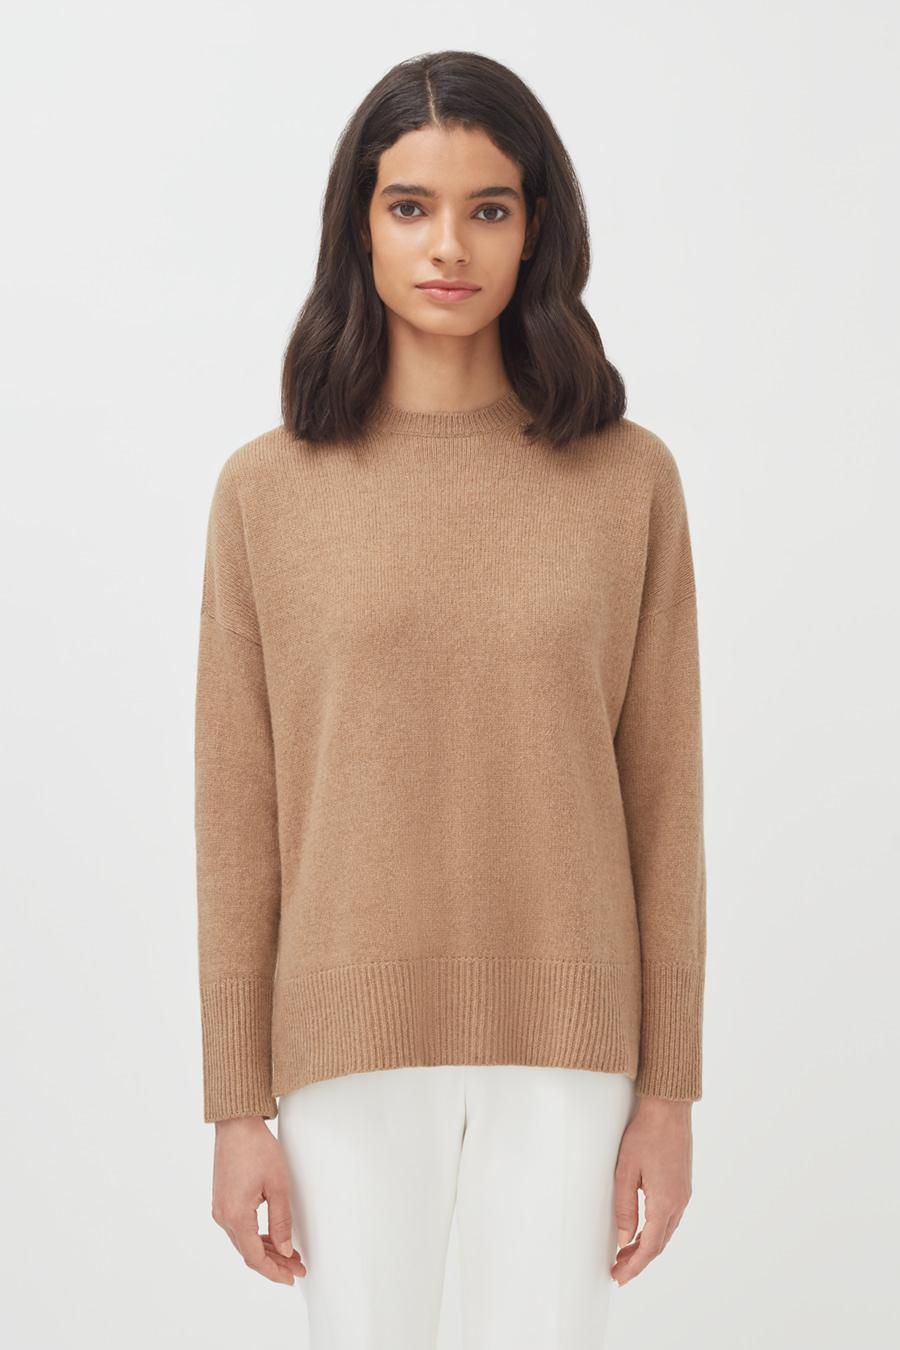 Women's Recycled Crewneck Sweater in Camel | Size: 1